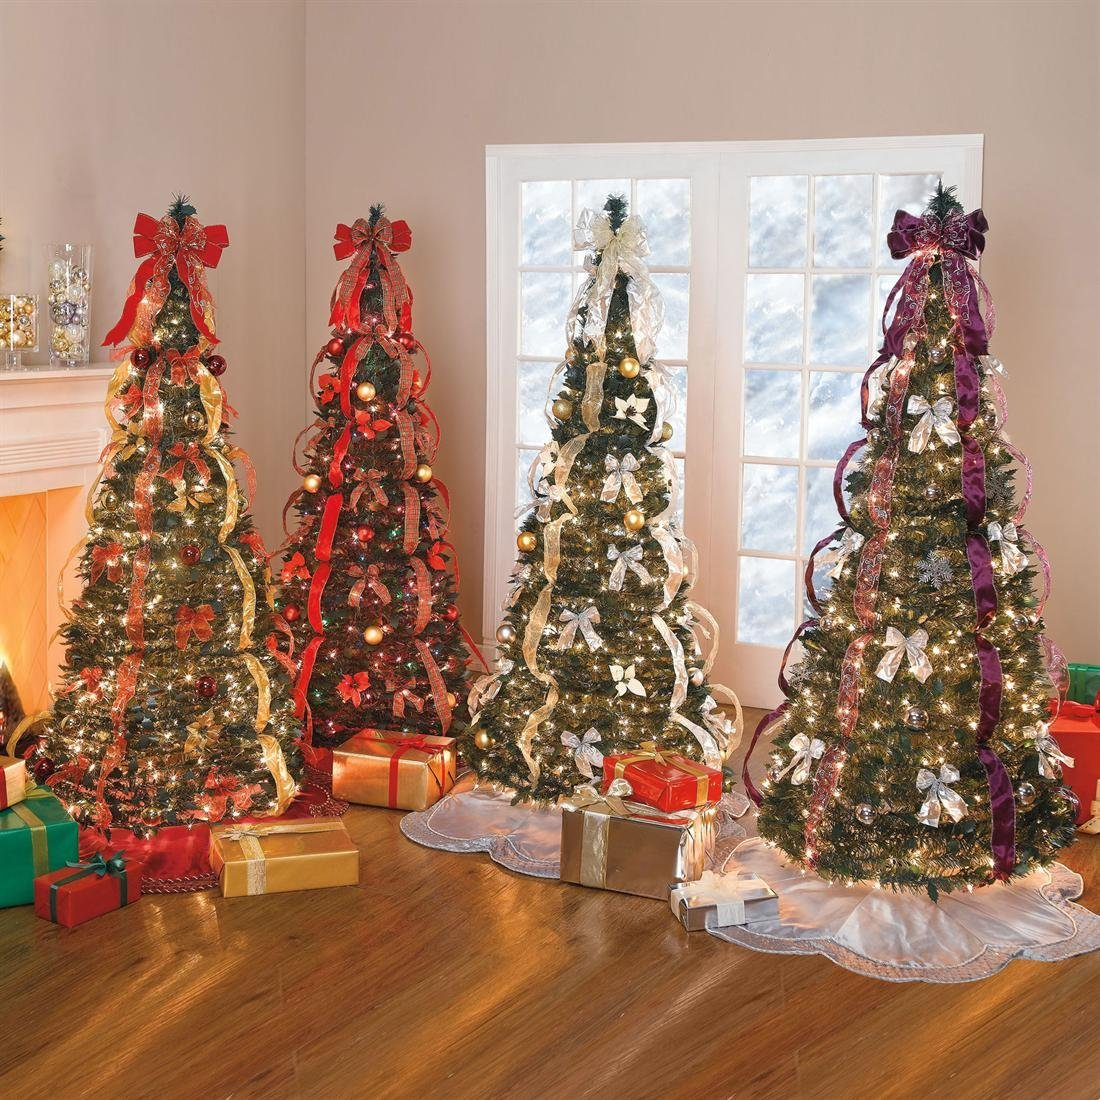 Discount Pre Lit 12 Christmas Tree: Pre Lit Pull Up Christmas Trees For Funk'N Simplicity